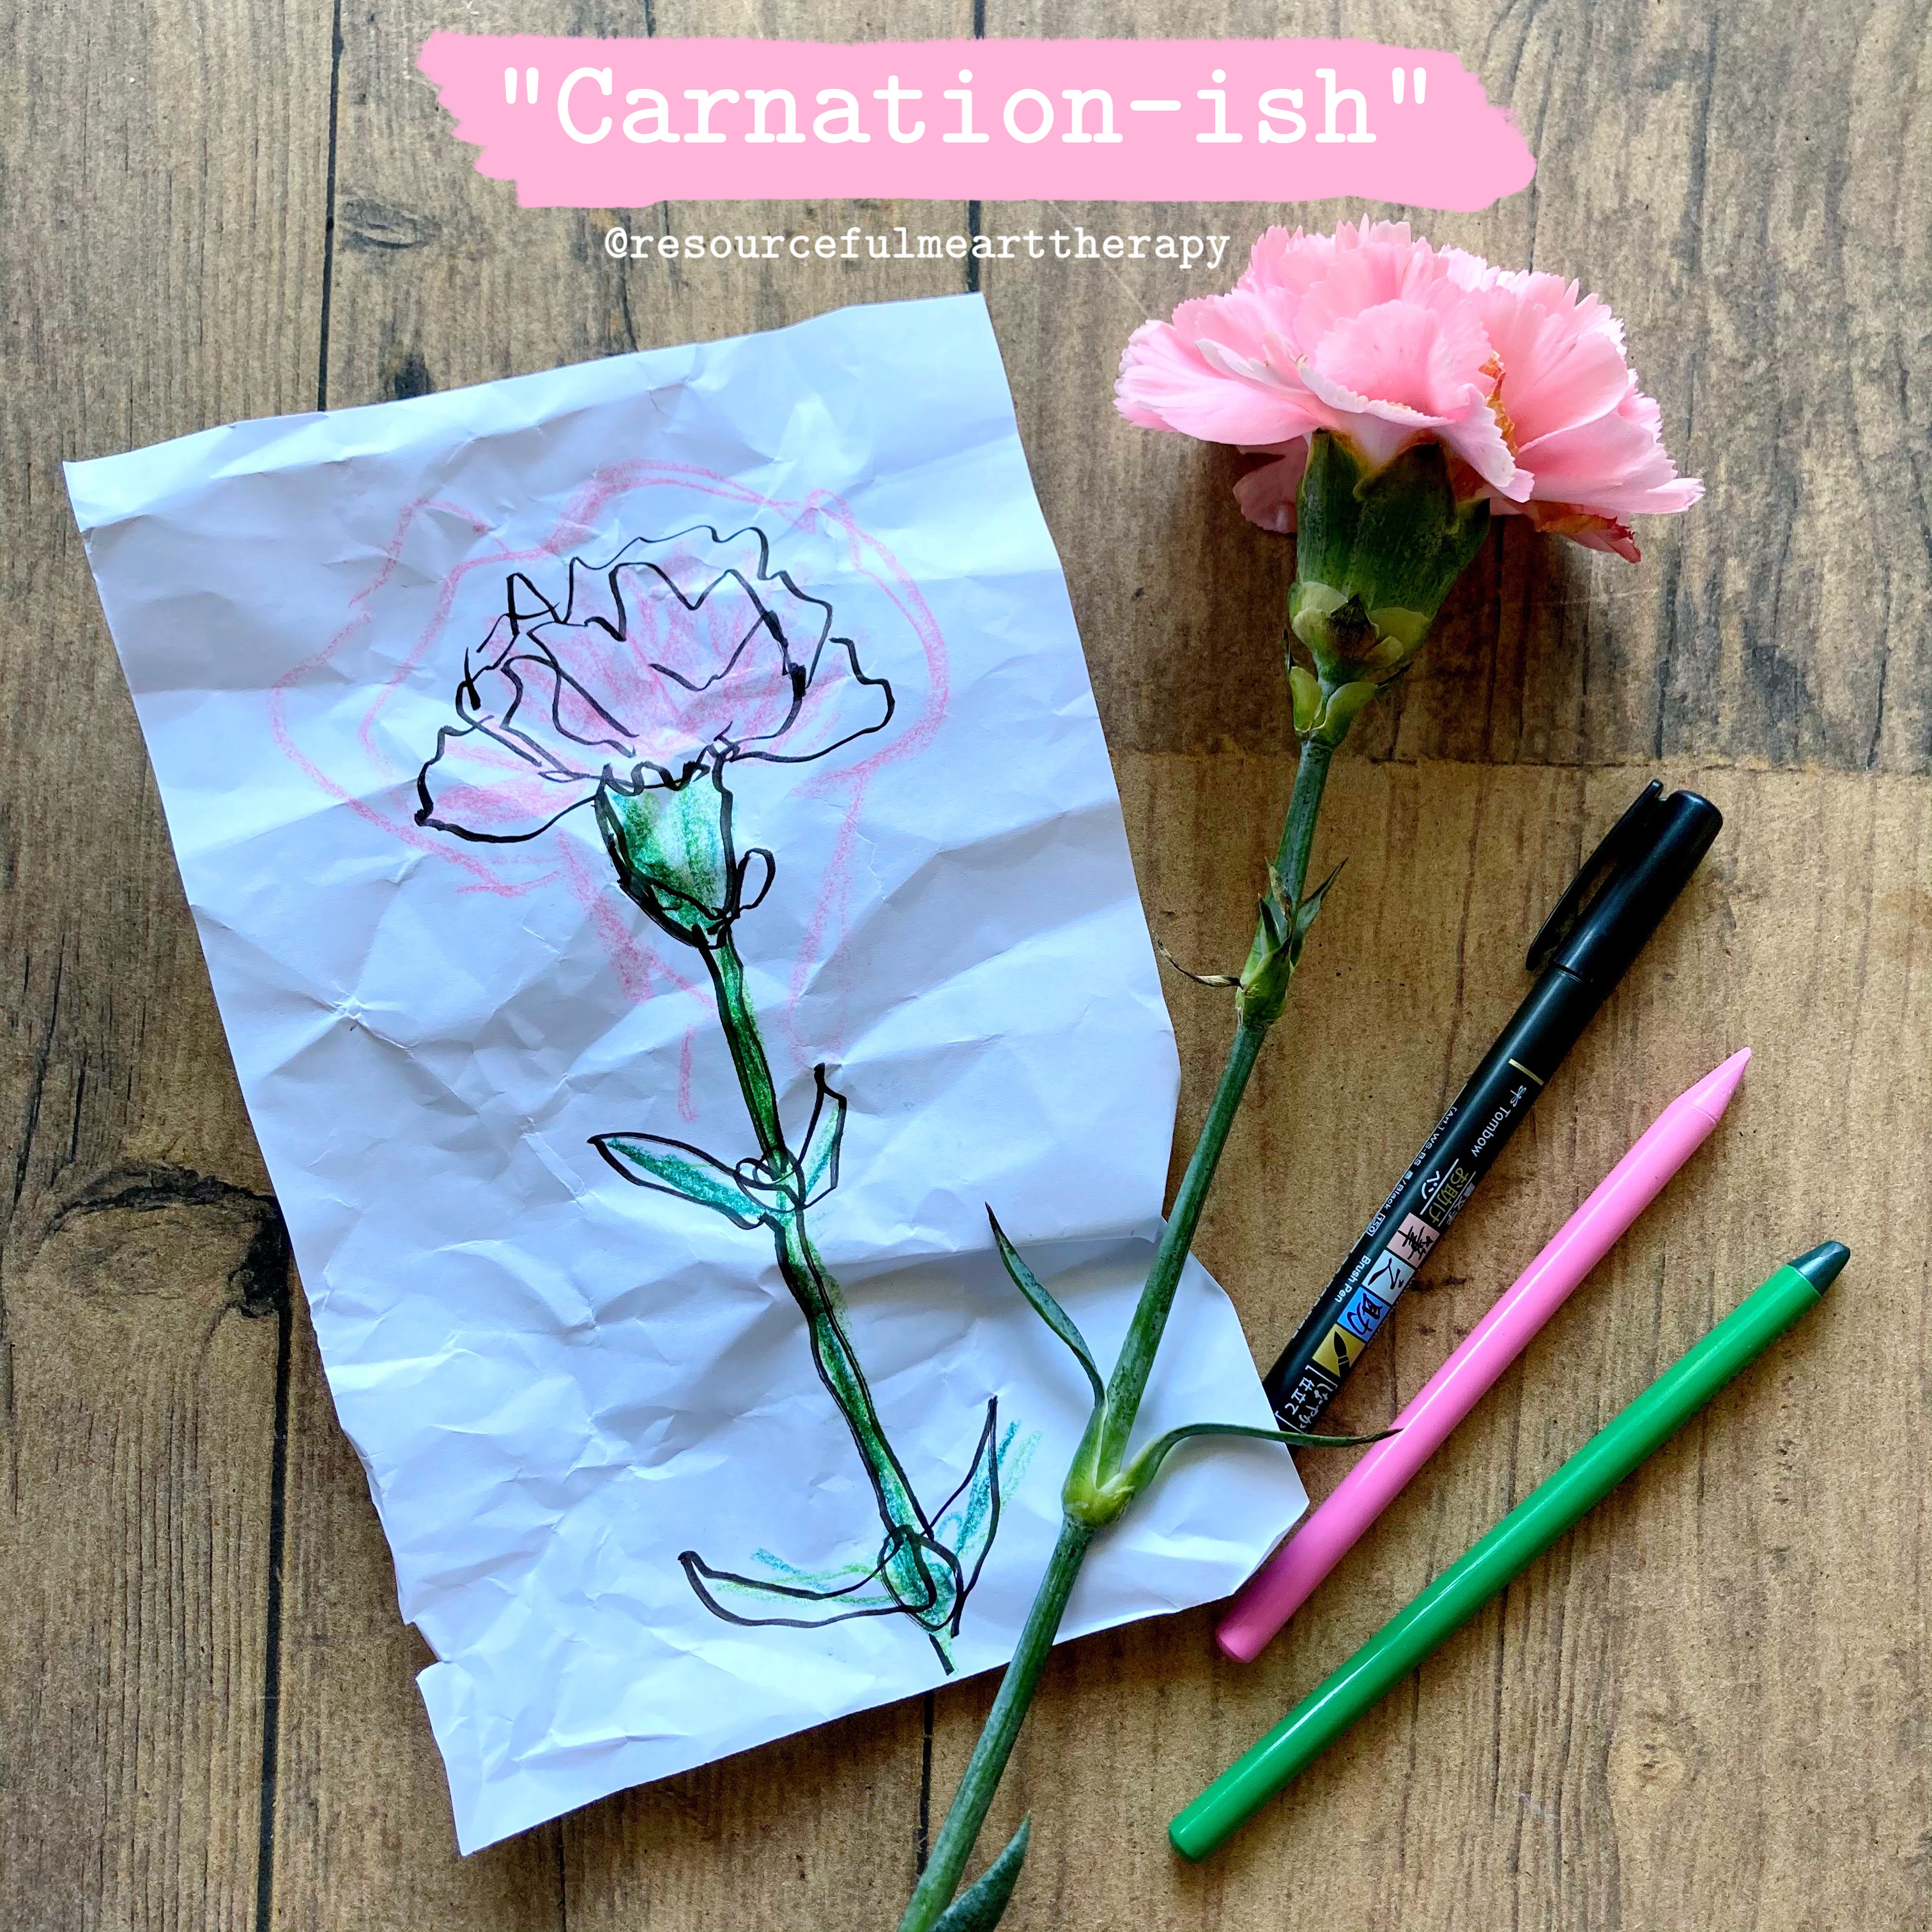 """Drawing of a carnation, beside a cut pink carnation, with the title """"Carnation-ish"""""""